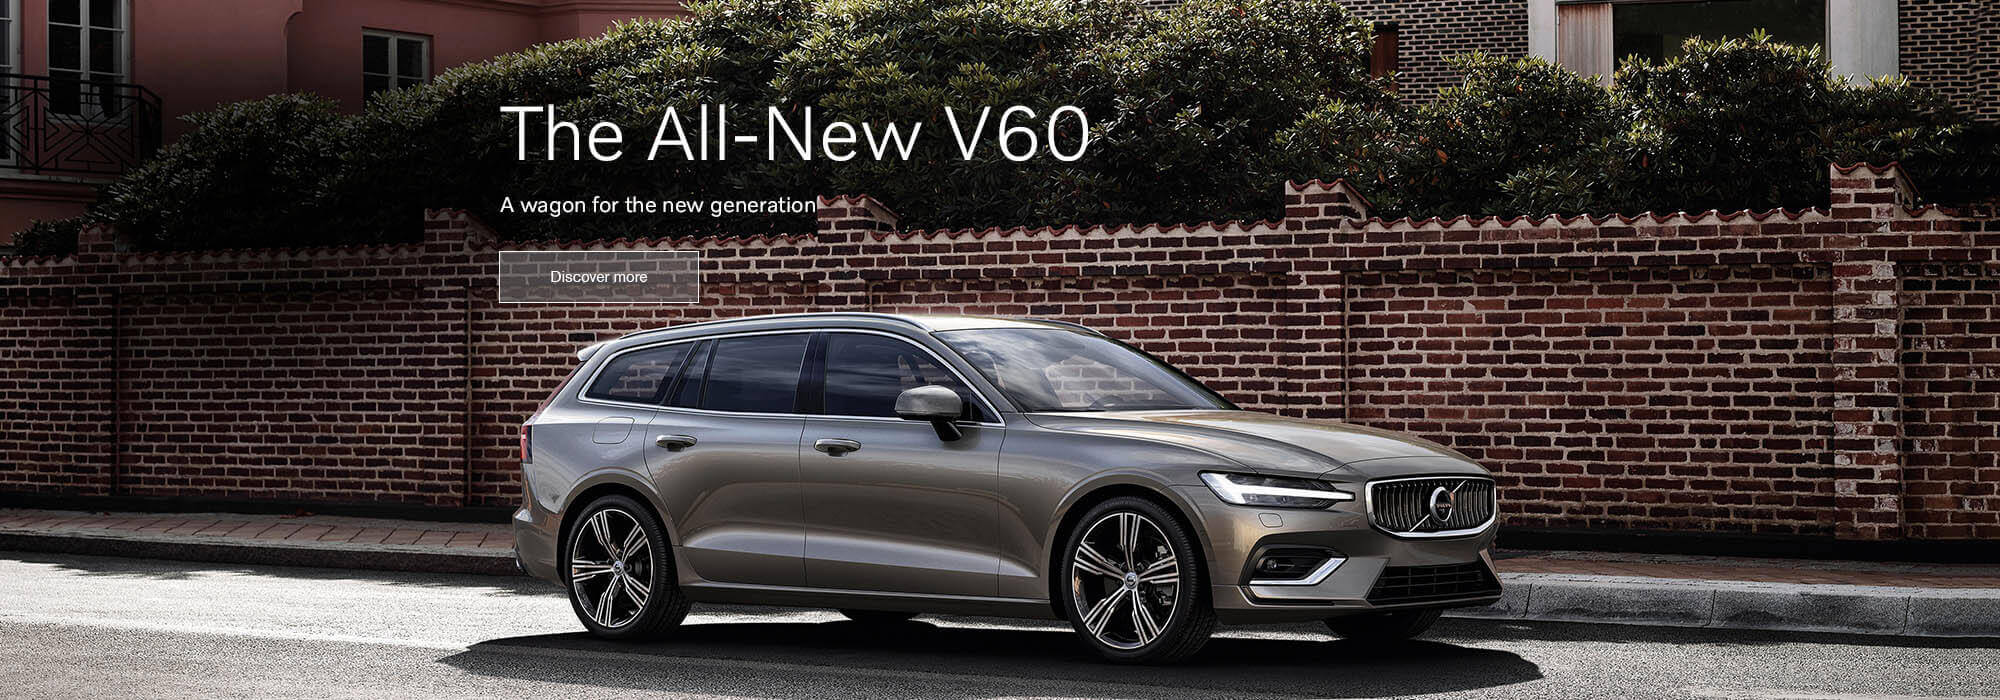 A wagon for the new generation